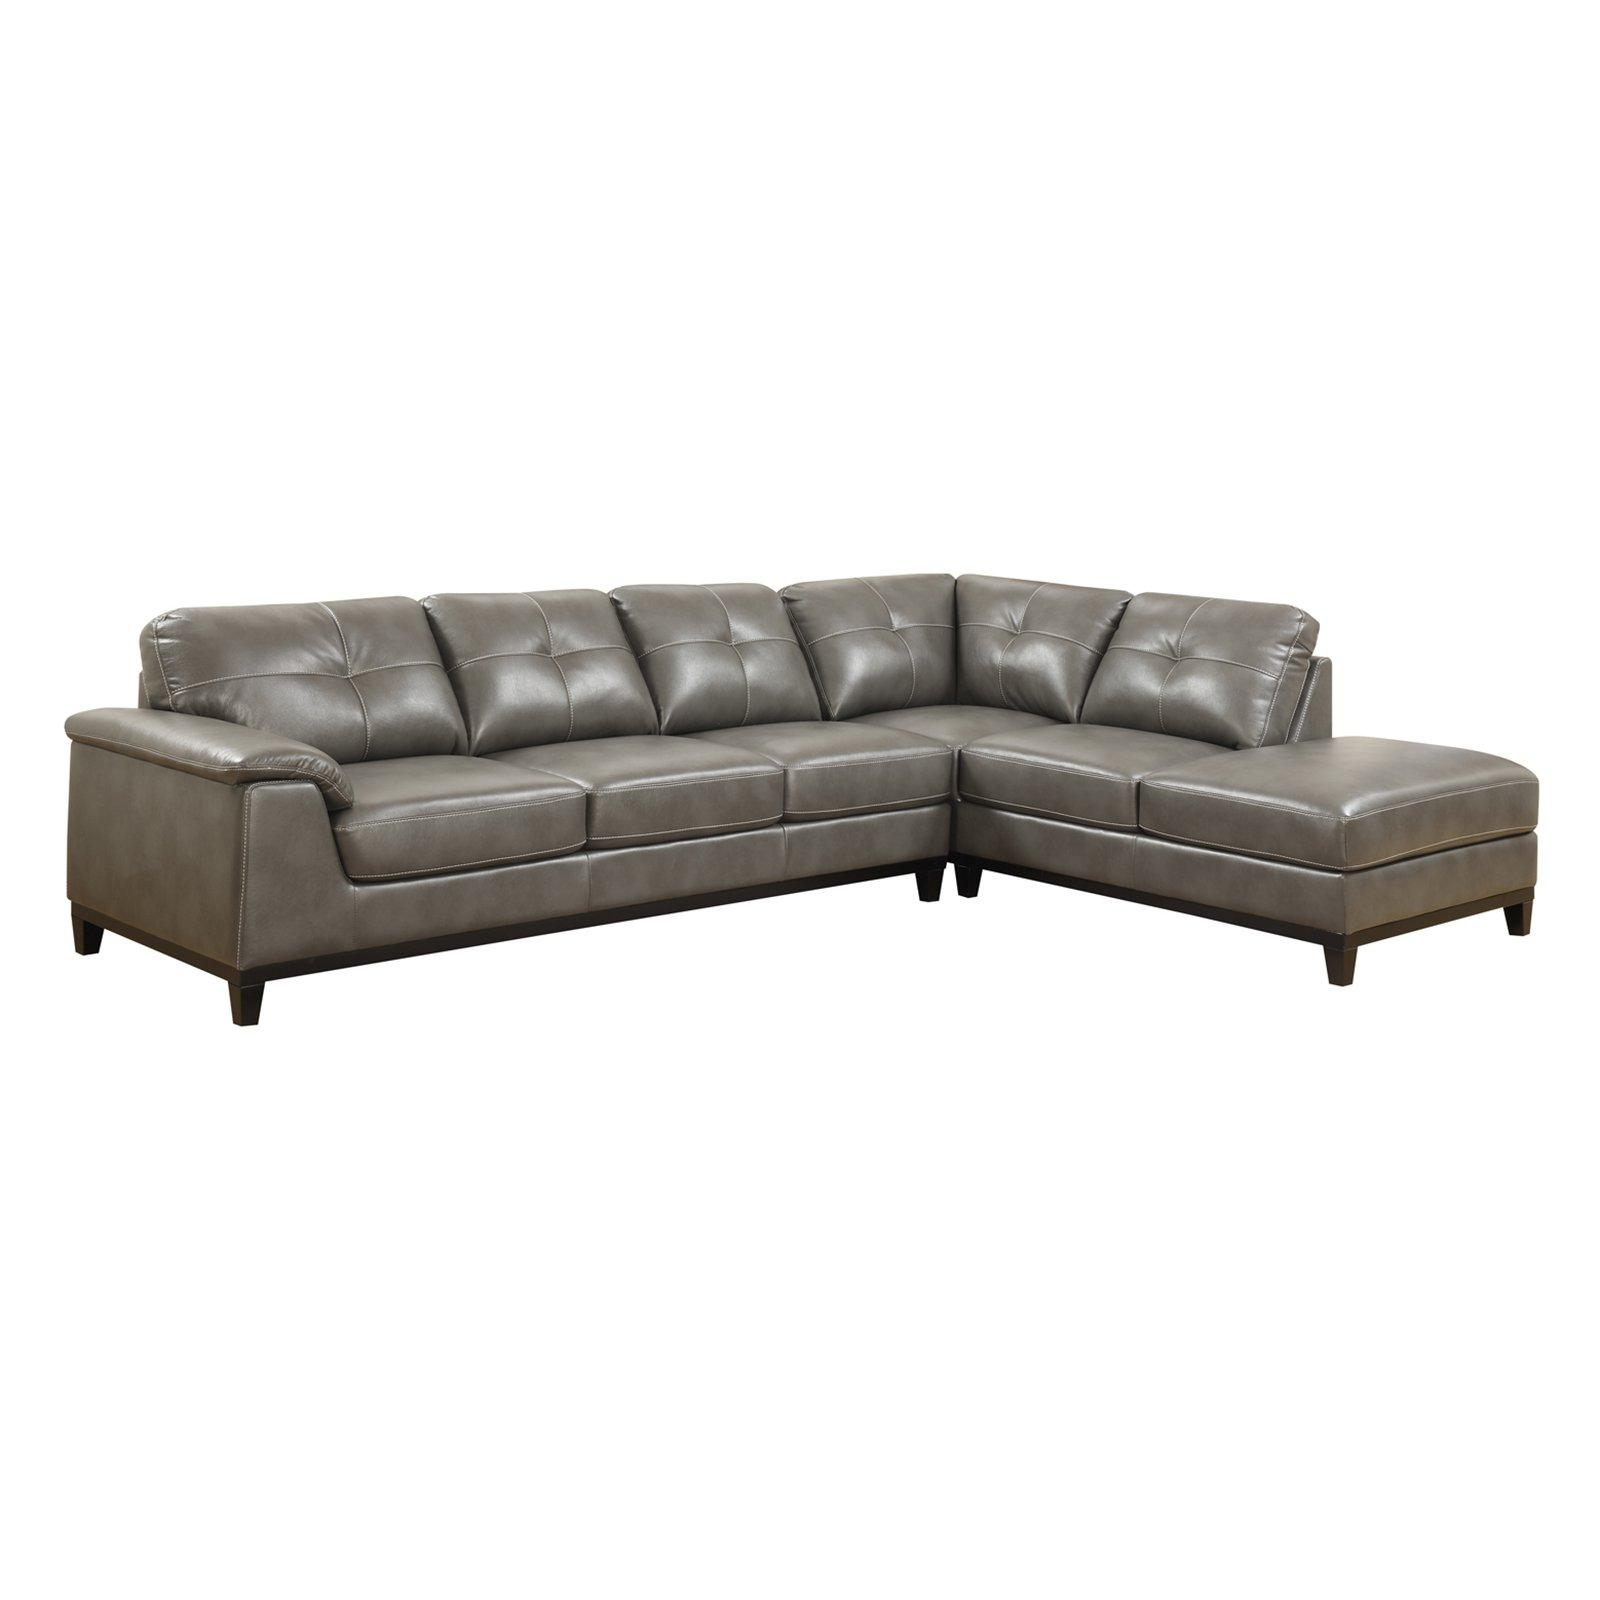 Fairmont Designs Summer 3 Piece Sectional Sofa | Hayneedle With Regard To Sectional Sofa With 2 Chaises (View 16 of 20)